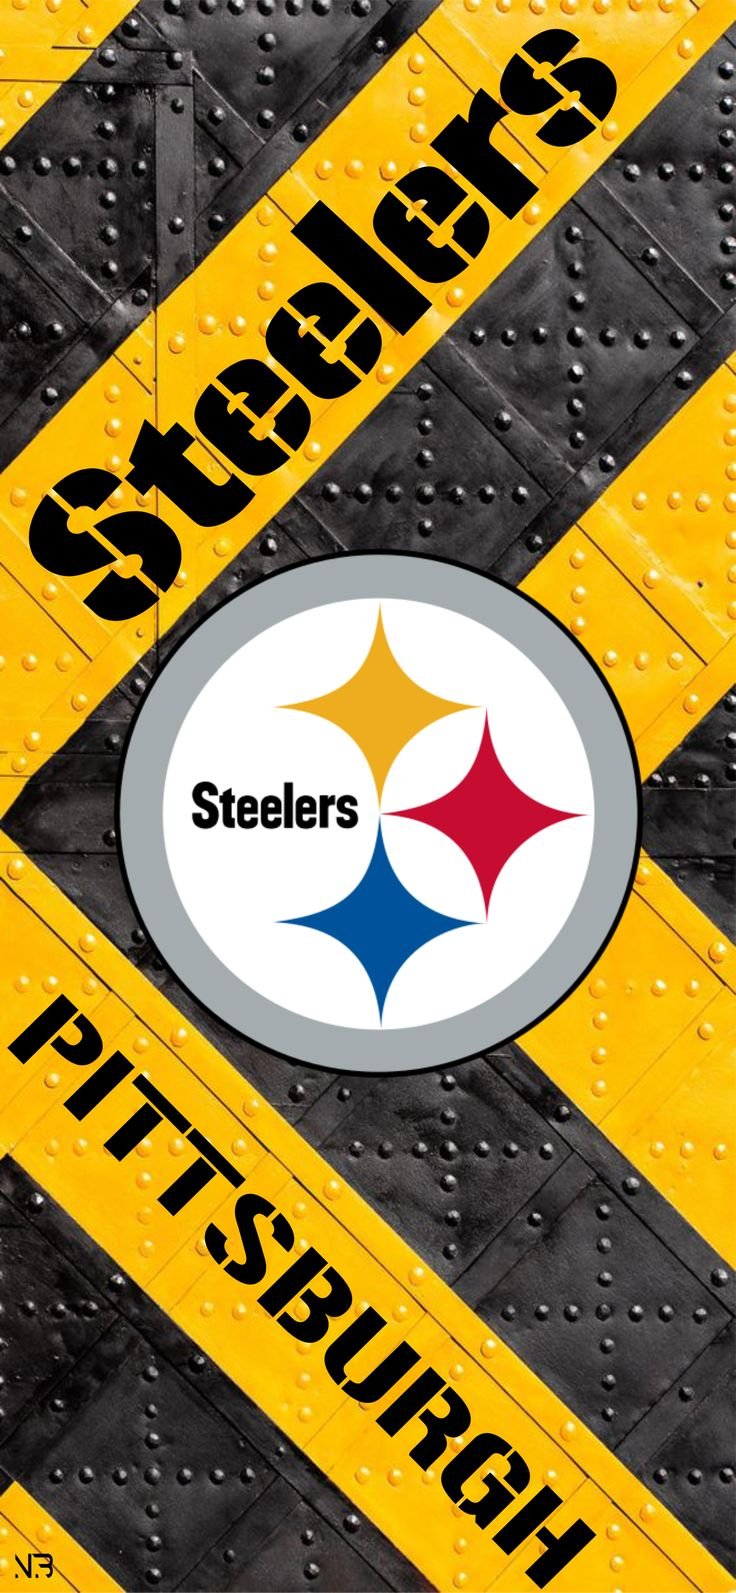 Pin by NatyNate on Fondos STEELERS in 2020 Pittsburgh